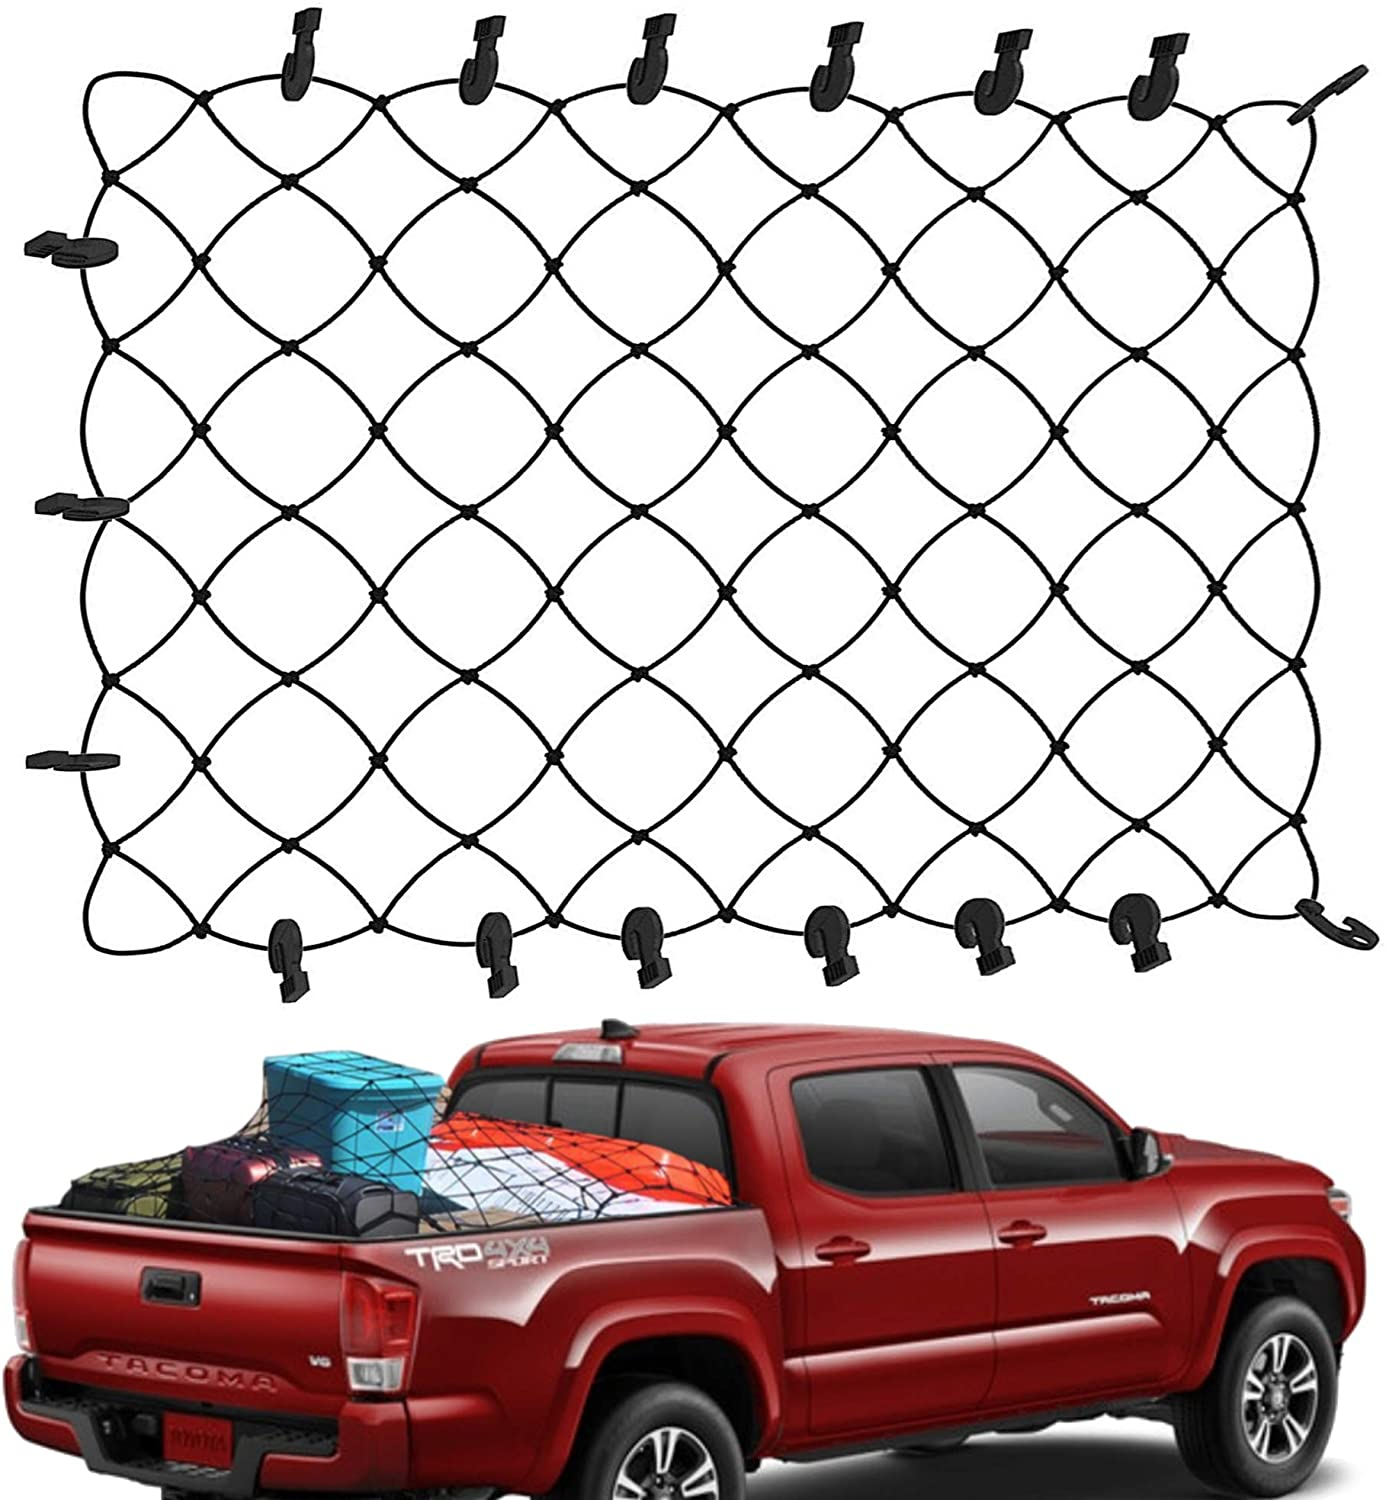 Trailer SUV with 12 Aluminum Alloy D-Shaped clip carabiner Universal Heavy Duty Car Rear Organizer Net Pickup Bed 4/' x 6/' Super Duty Bungee Cargo Net Stretches to 10 x 14 for Truck Bed Trunk